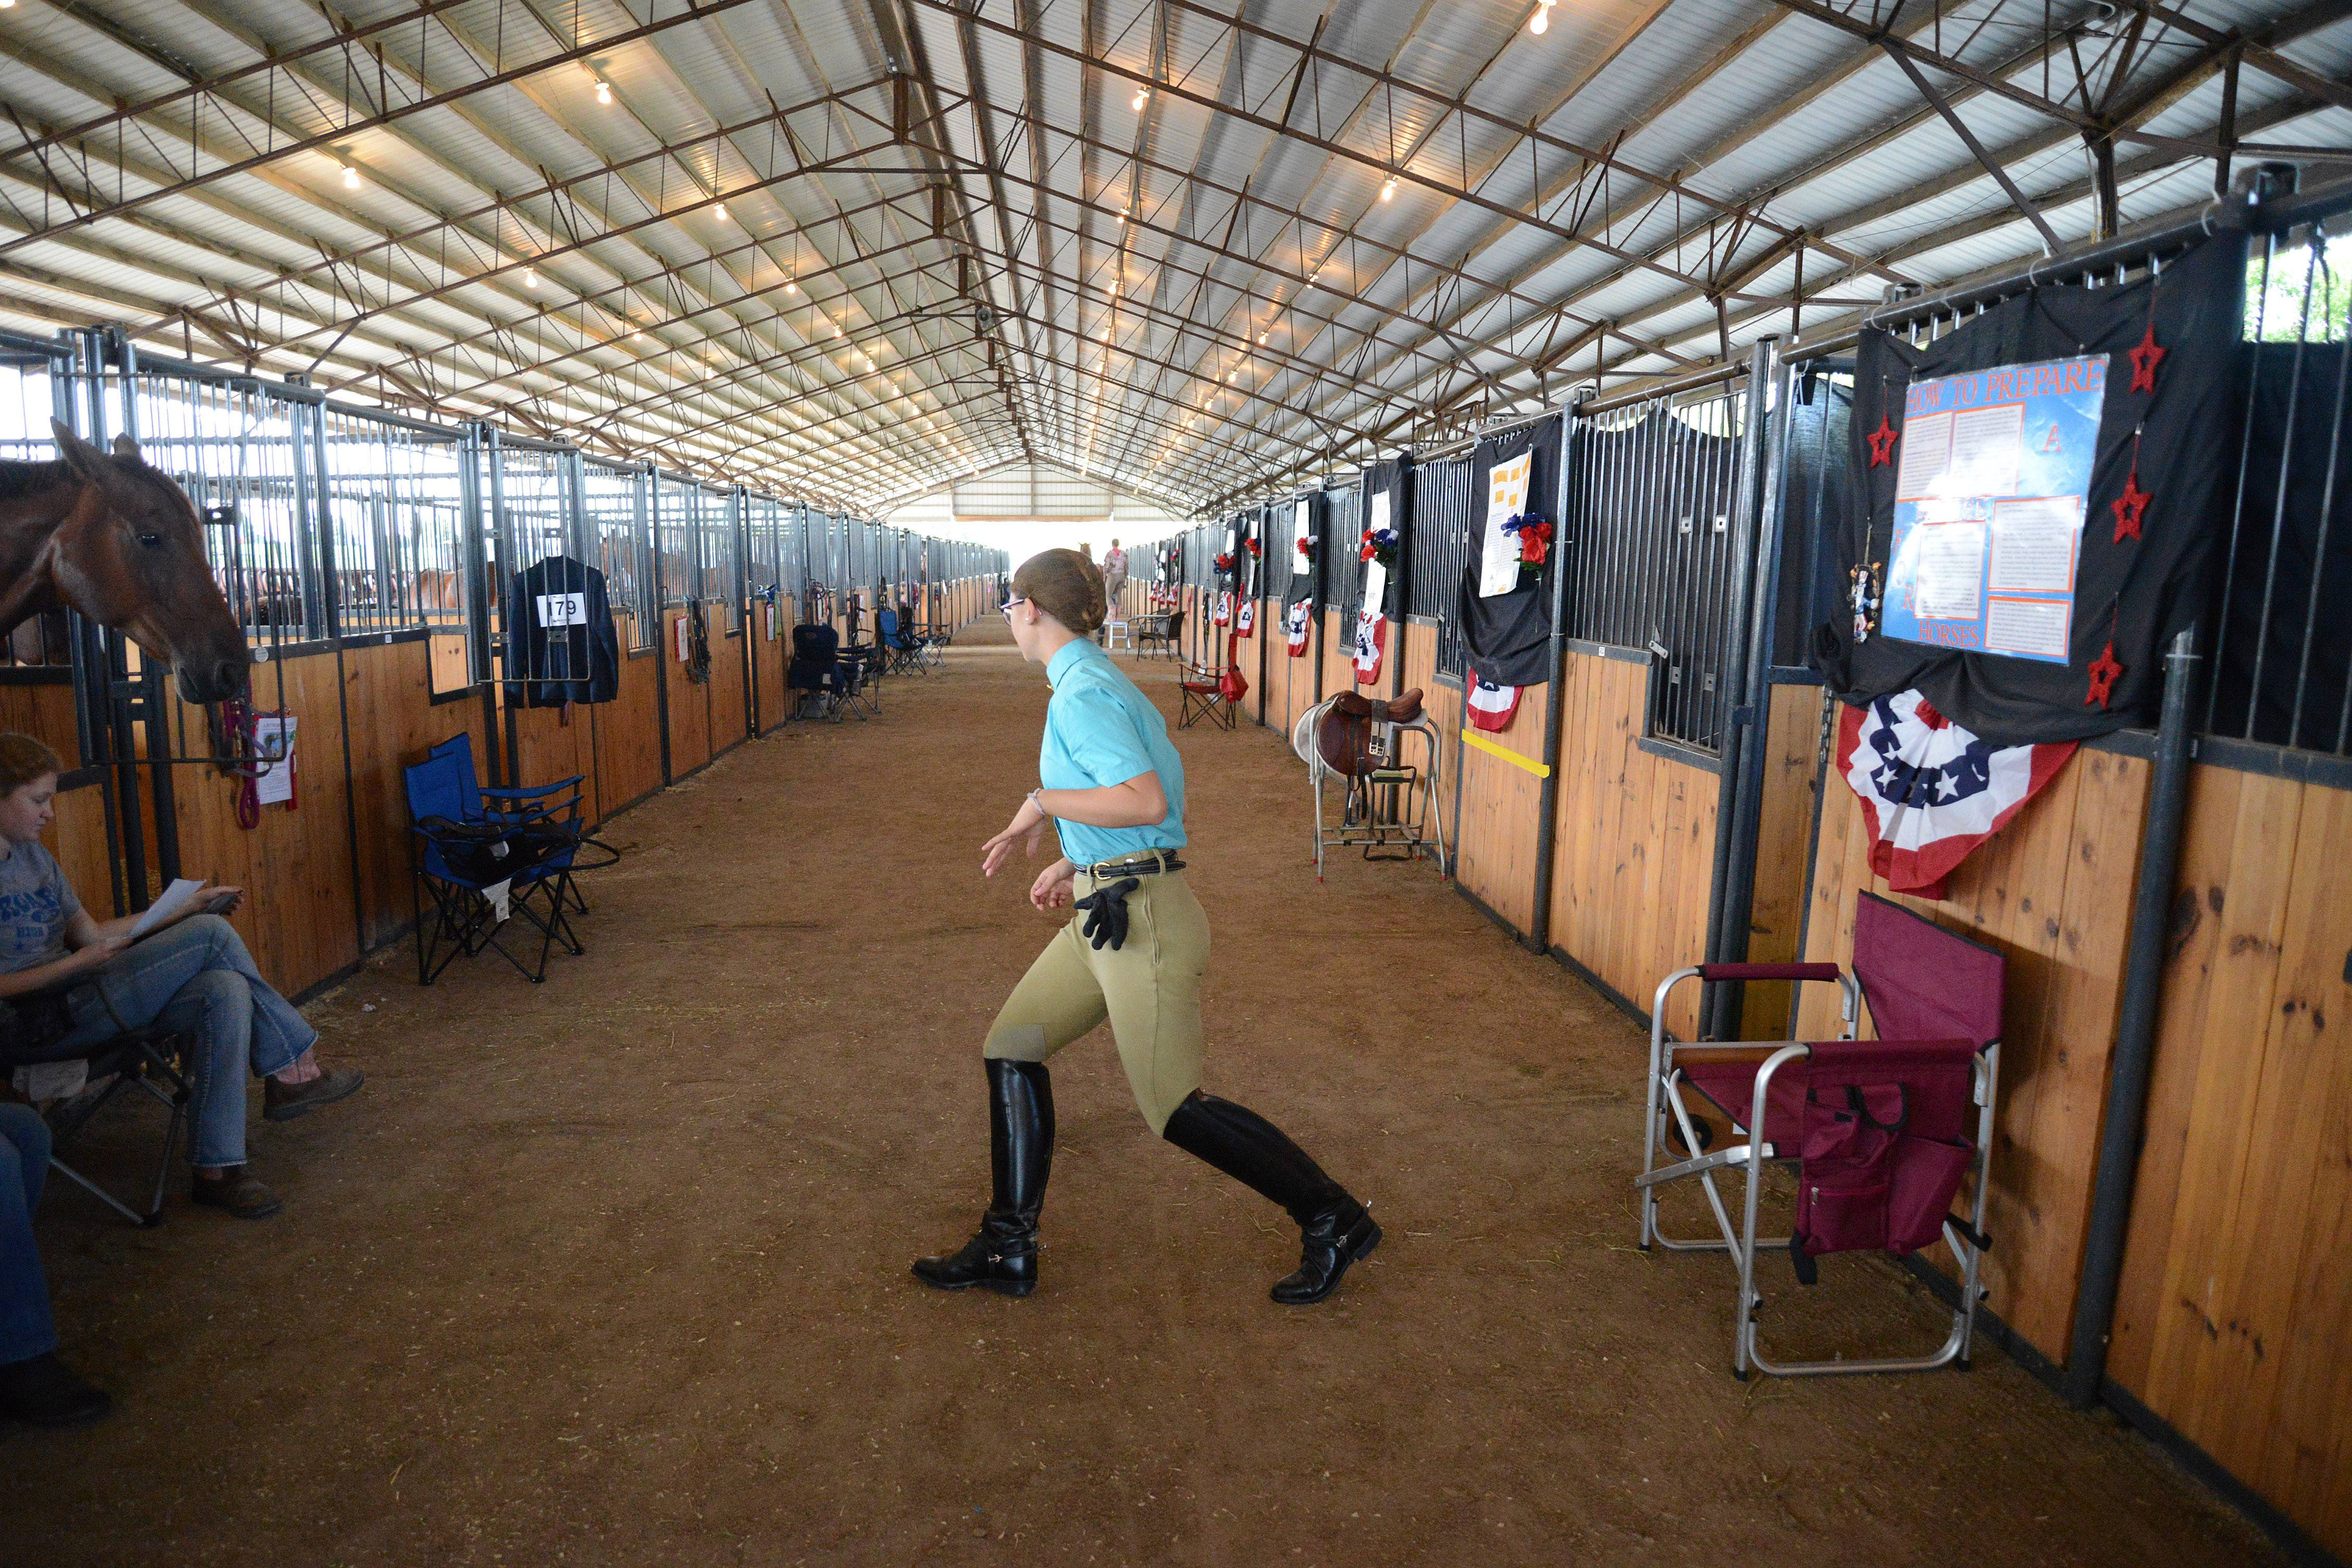 Madde Klinkey gallops through her event routine drawn on the floor of the barn while she waits for her class to be called to compete Thursday at the Kane County Fair.